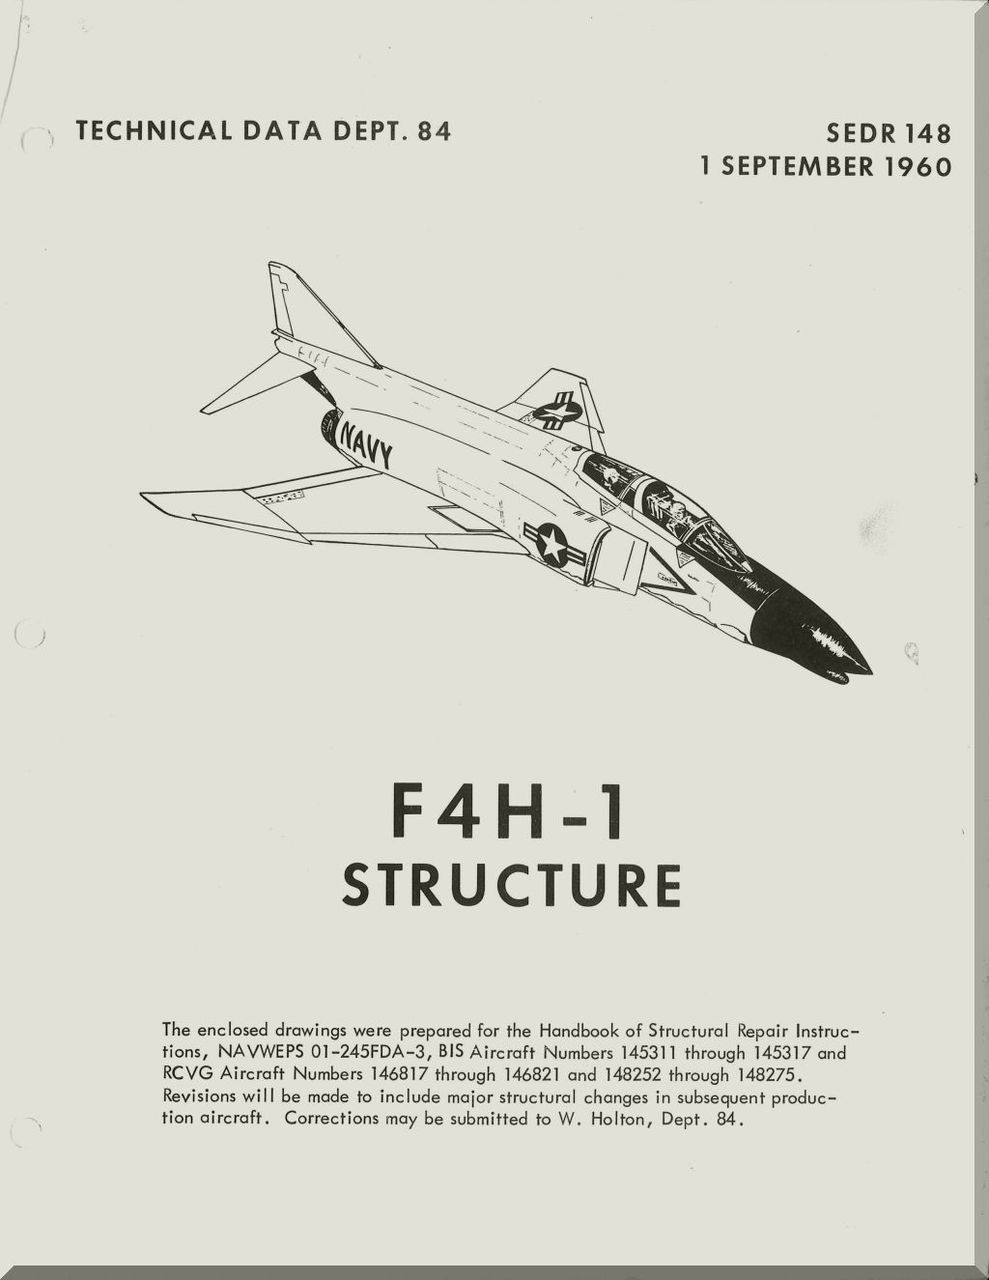 Mc Donnell Douglas F-4H -1 Aircraft Structure Manual - -1960